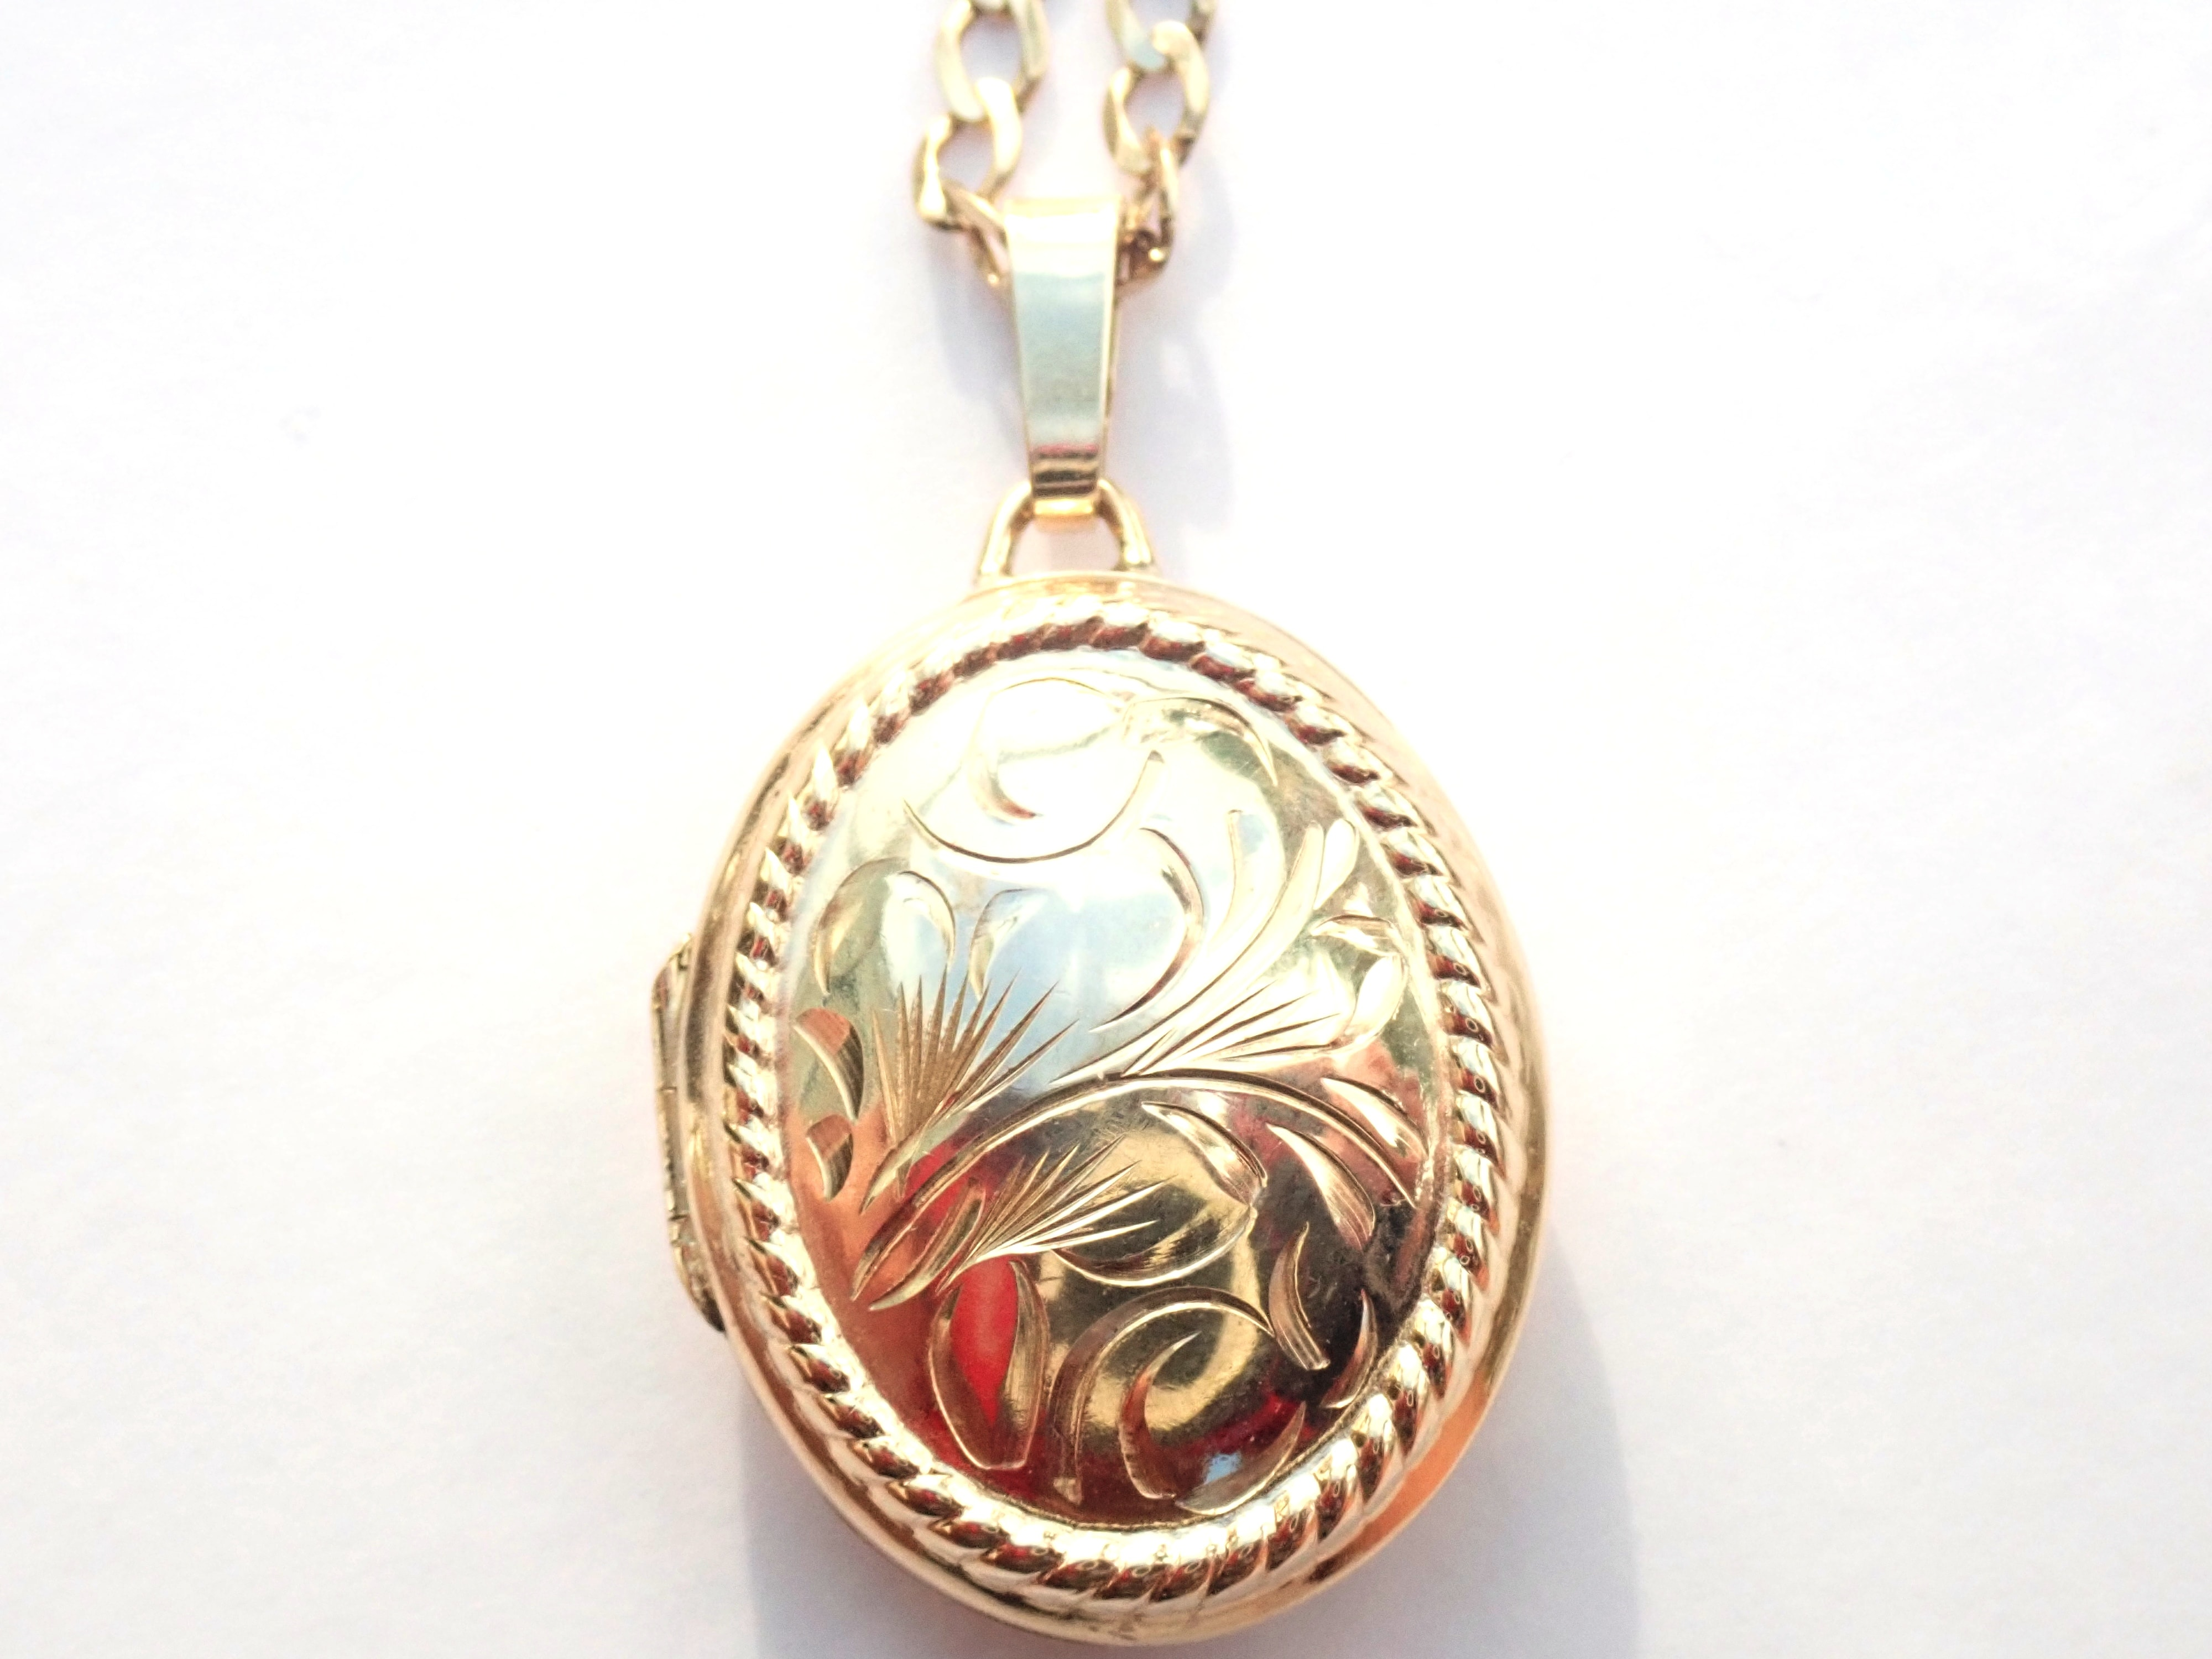 AA000935 - Solid 9K Yellow Gold Floral Patterned Oval Locket & Gold chain Necklace 4.5g #80